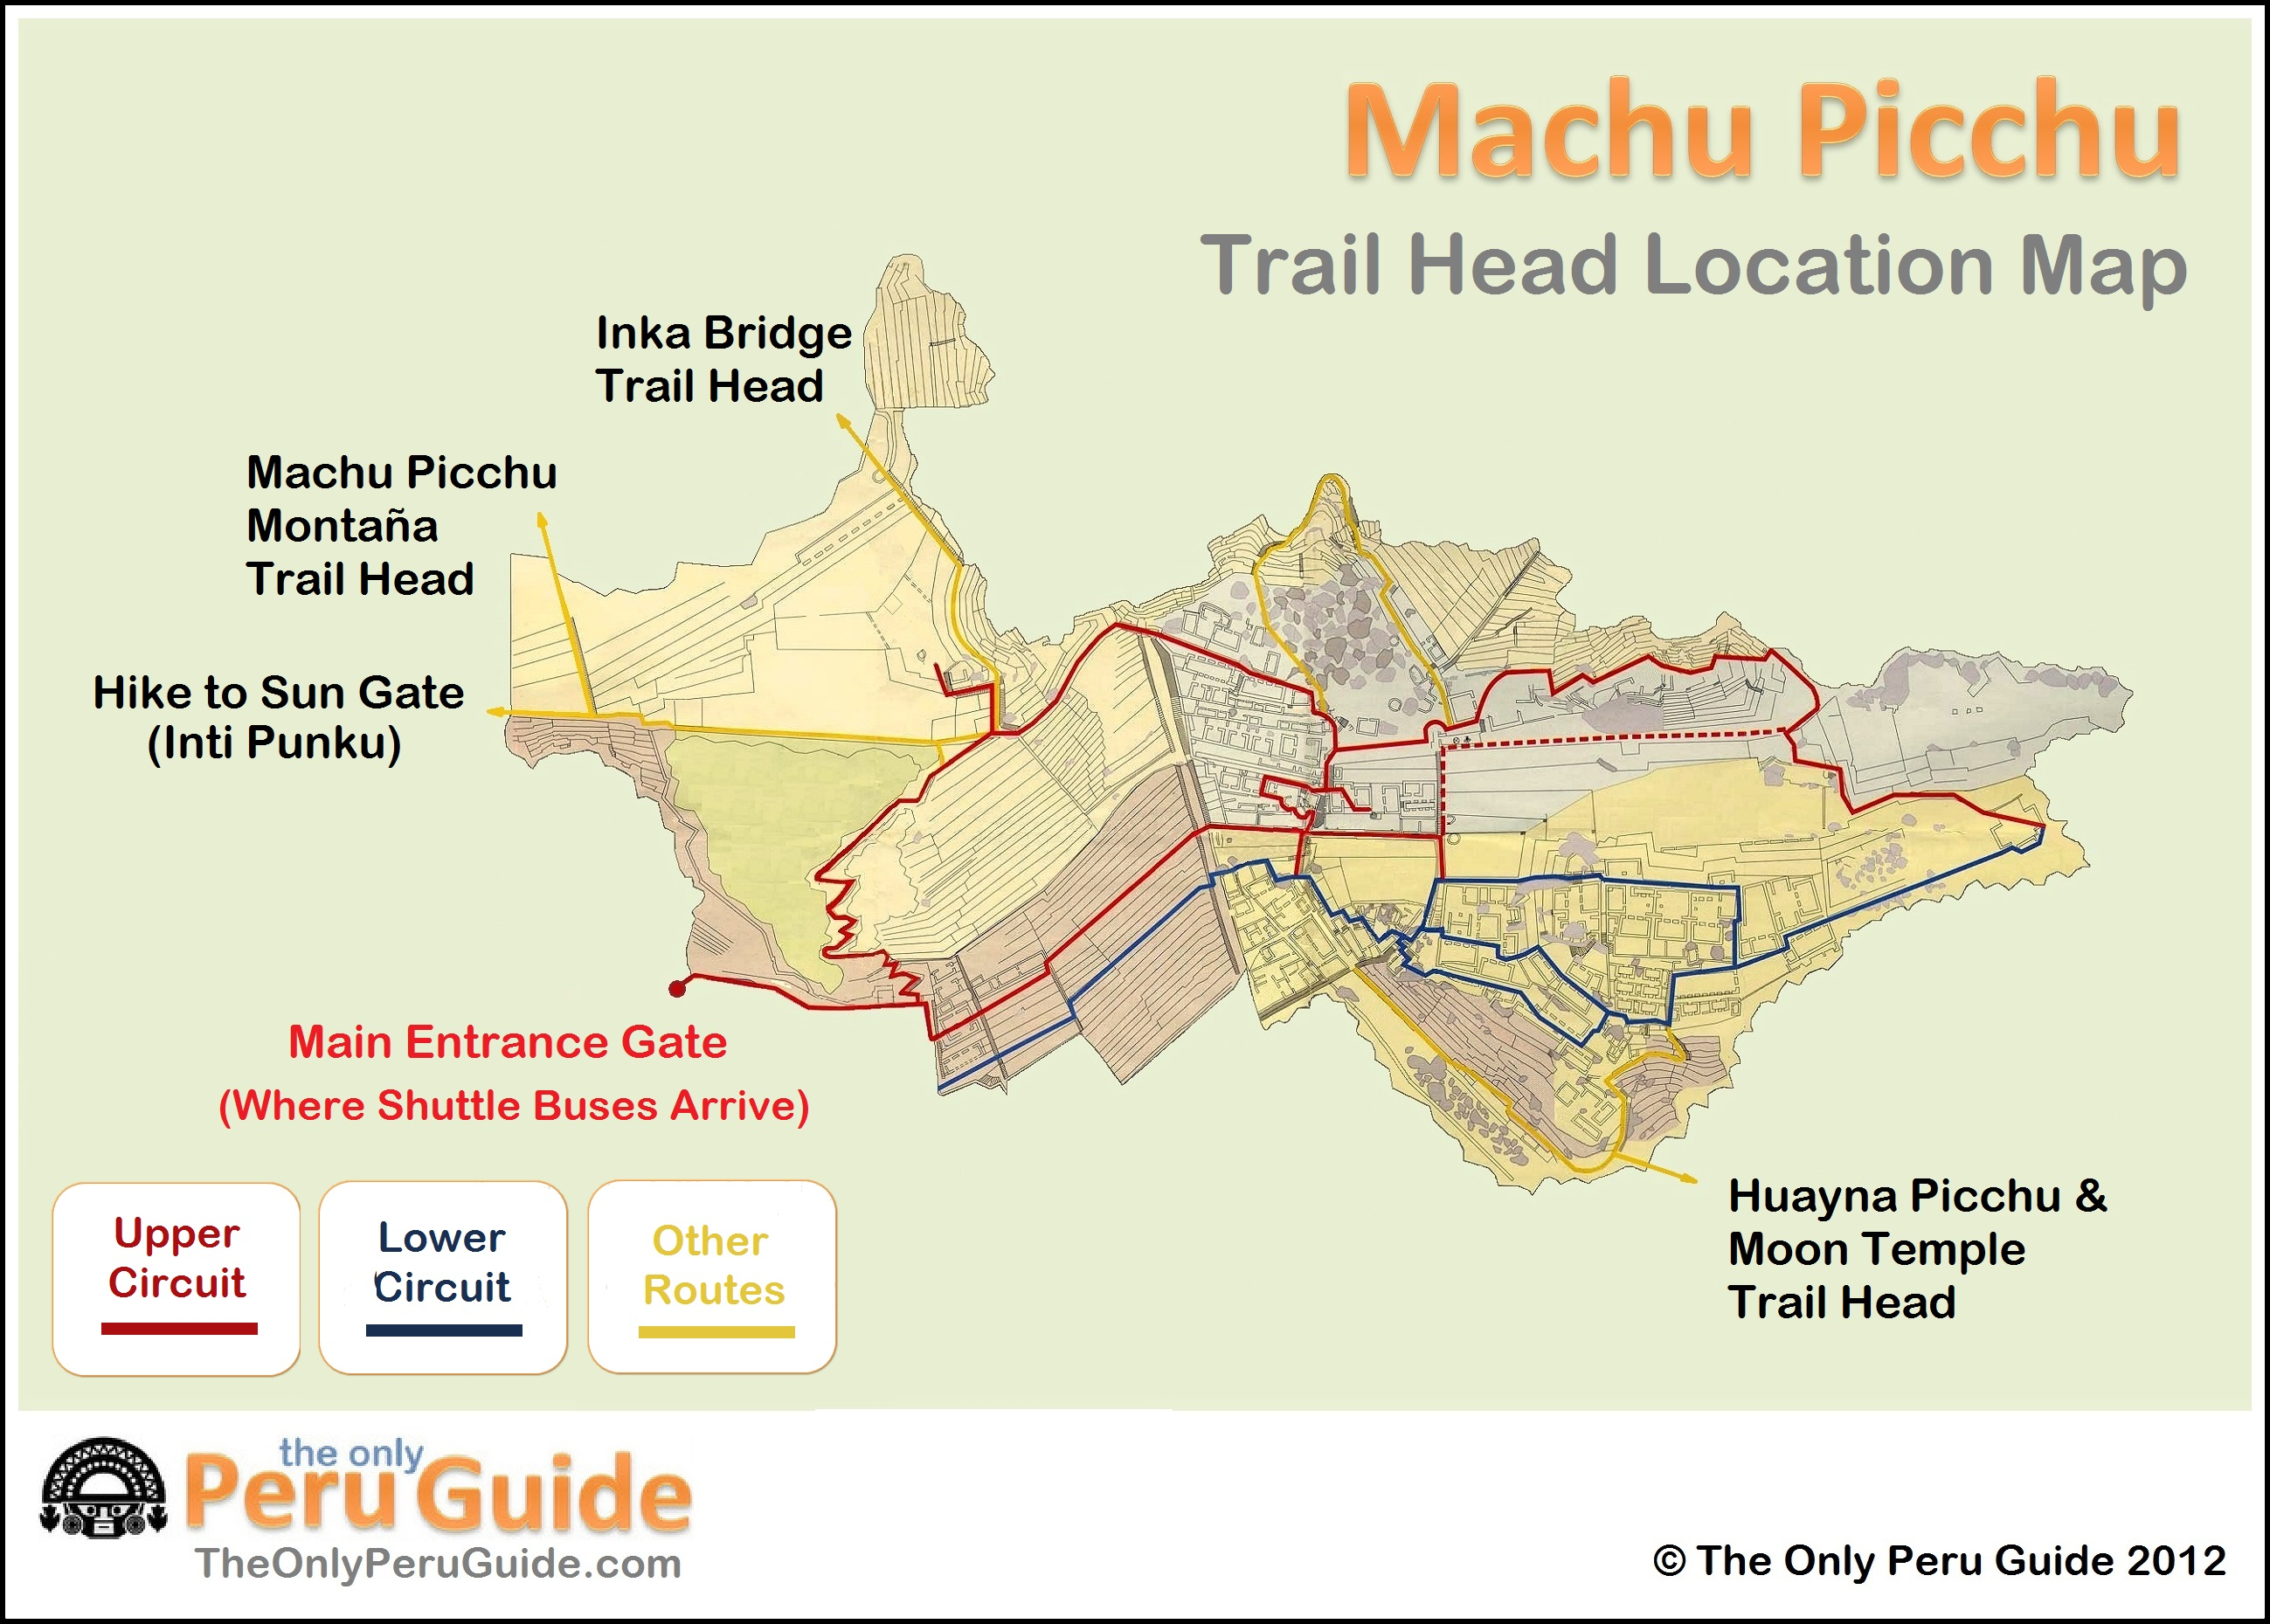 Trail head location map